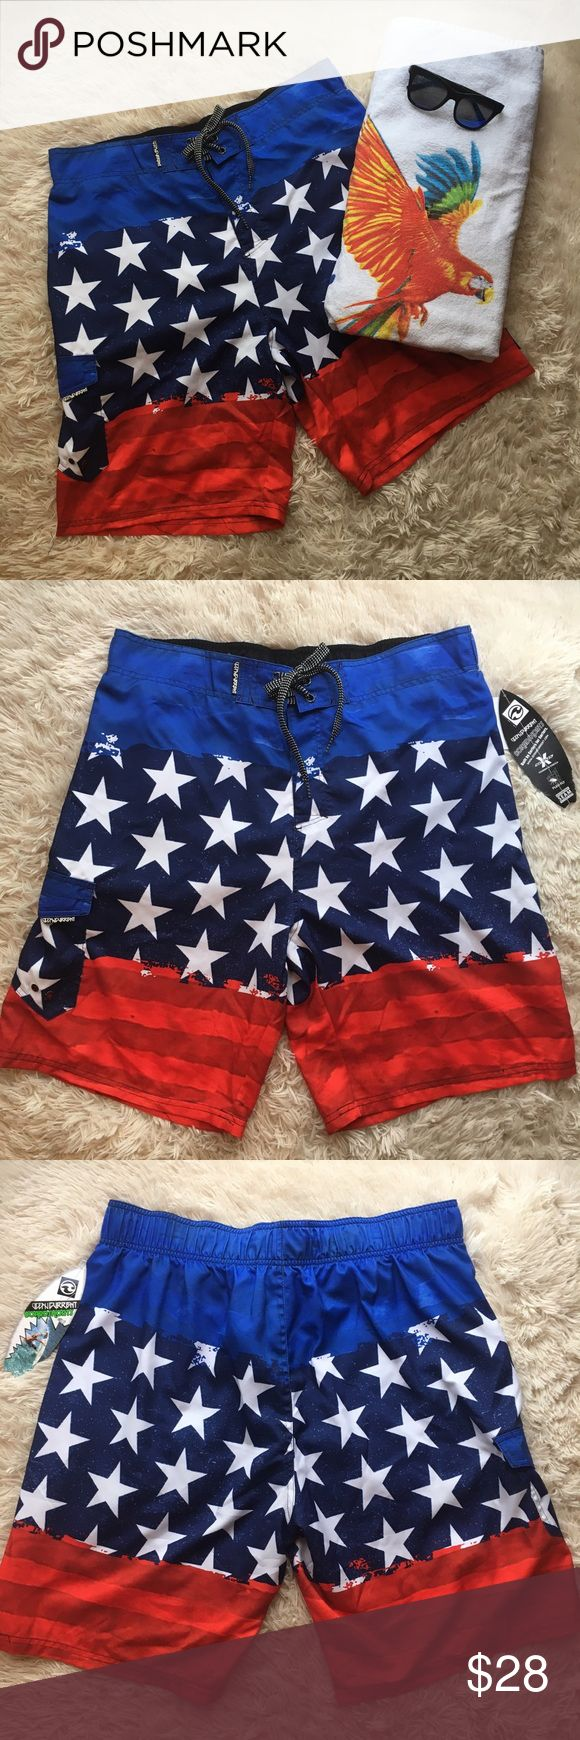 Ocean Current Board Shorts Red, white and blue board shorts/quick drying construction/adjust waist with drawstring/velcro fly/velcro pocket on left side includes 2 drainage holes/waist 36 inseam is 9 1/2 length from waistband is 21 1/2 Ocean Current Swim Board Shorts